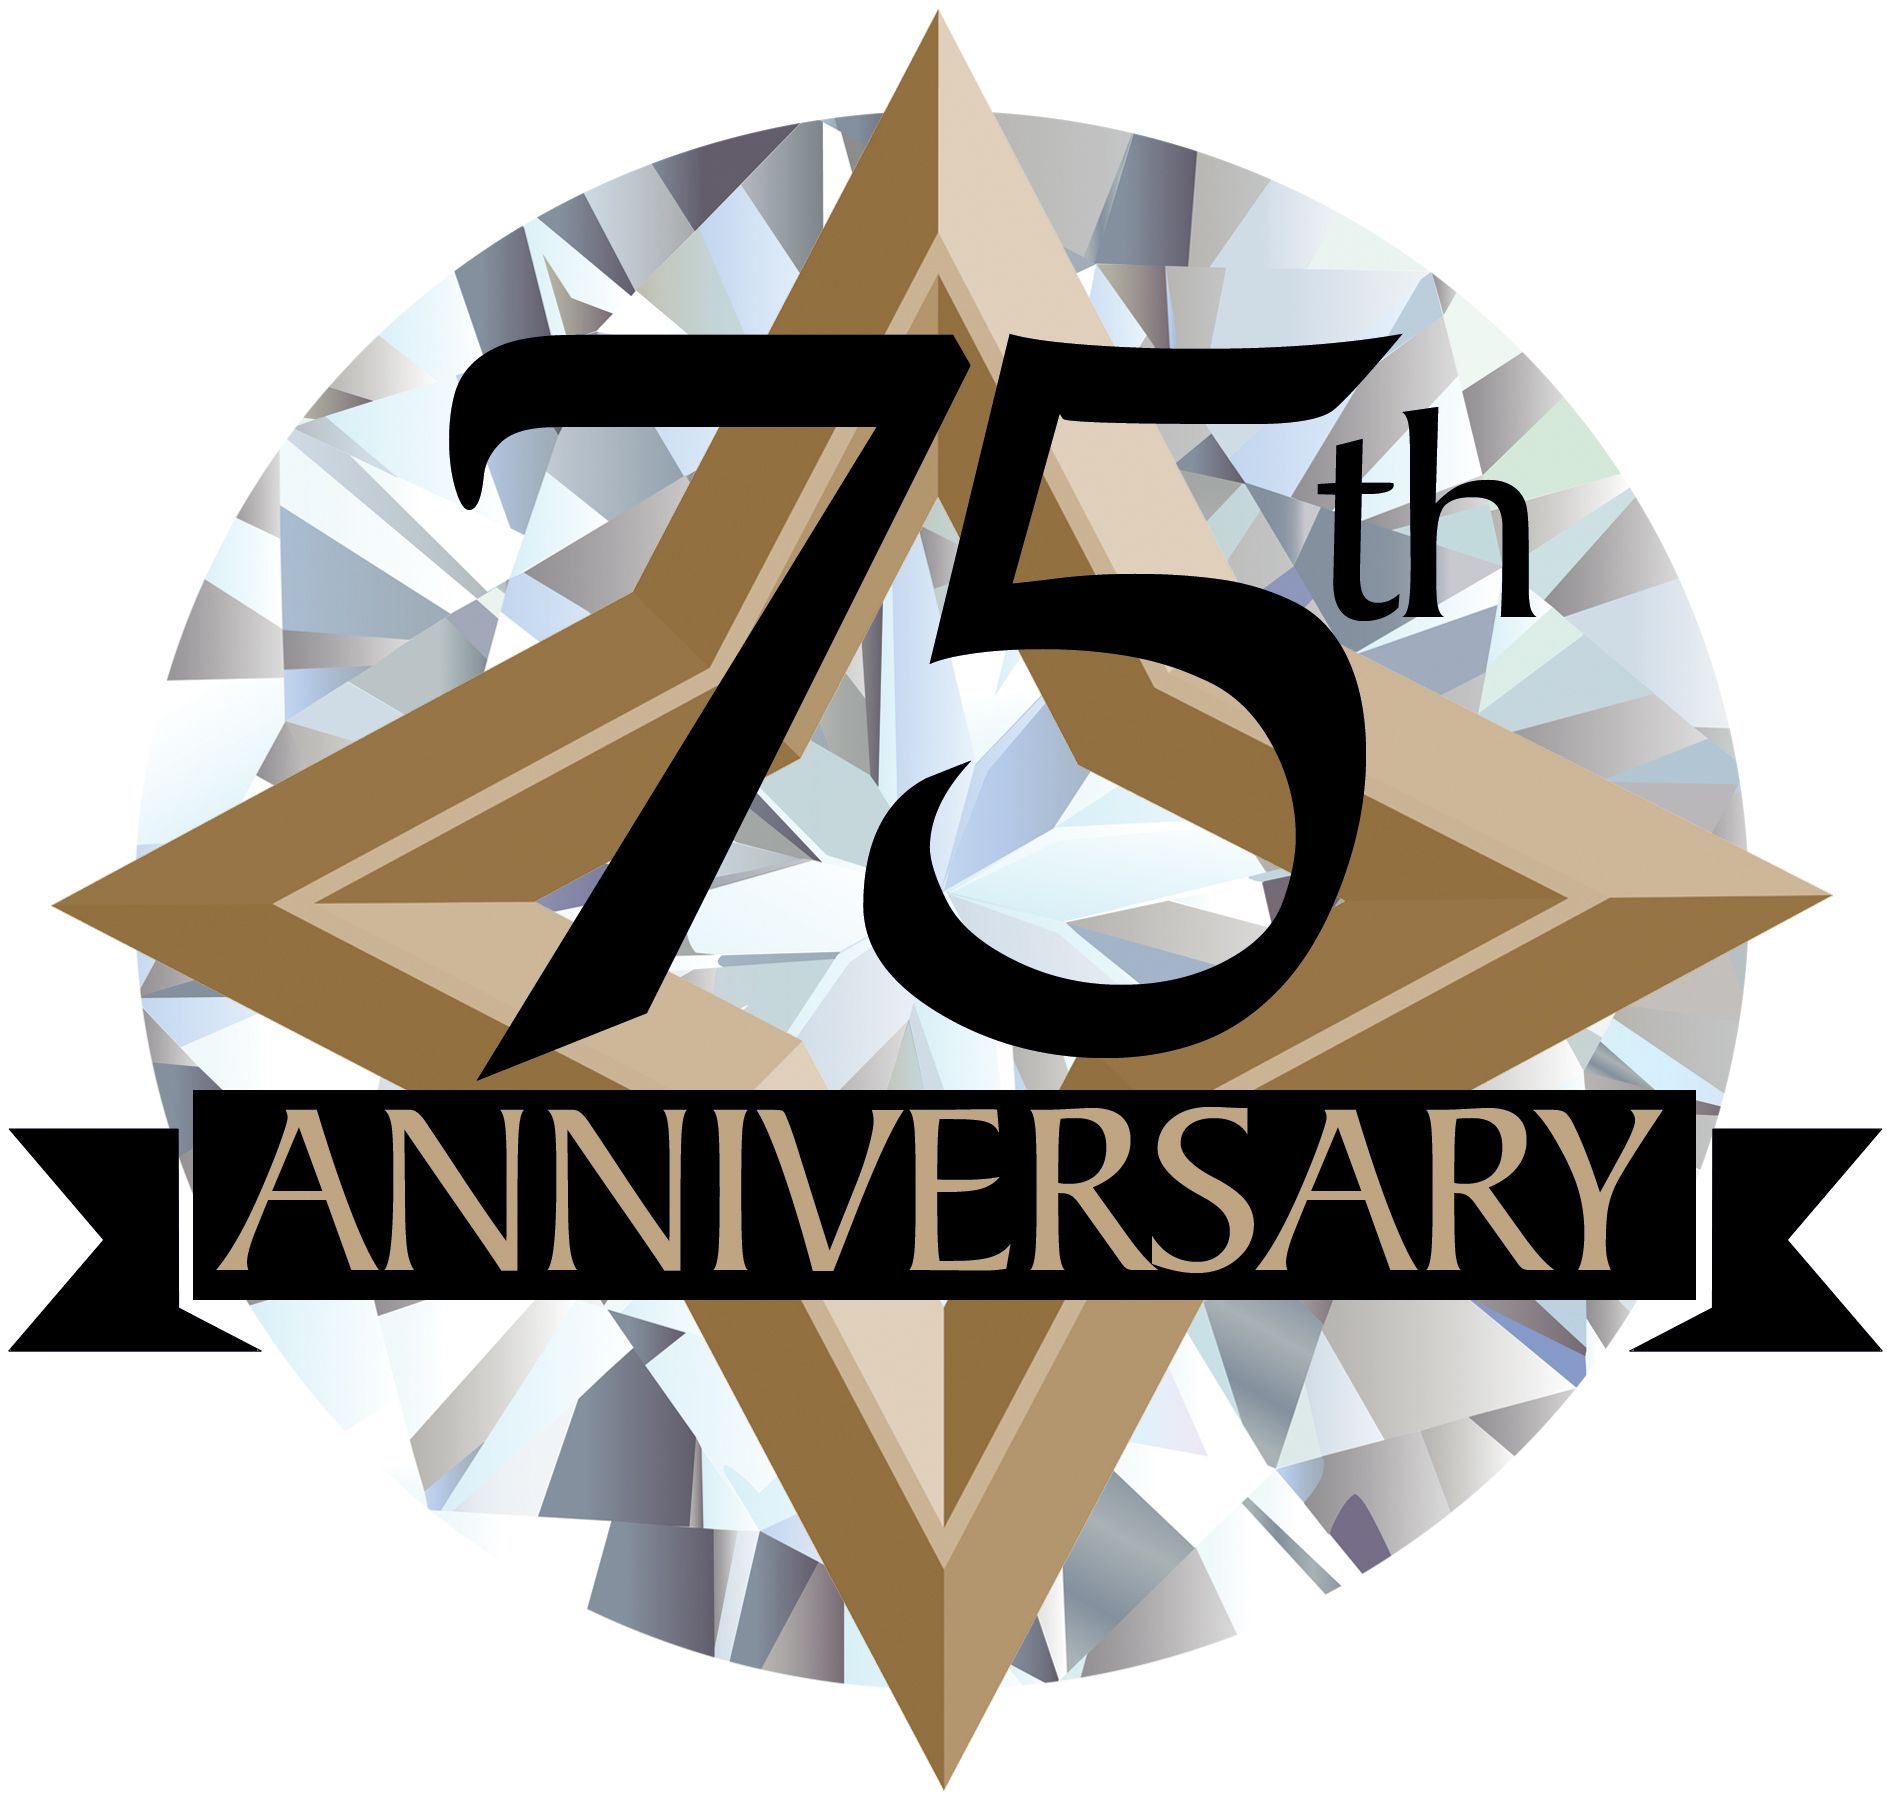 July marks our 75th Anniversary! To celebrate, we will be